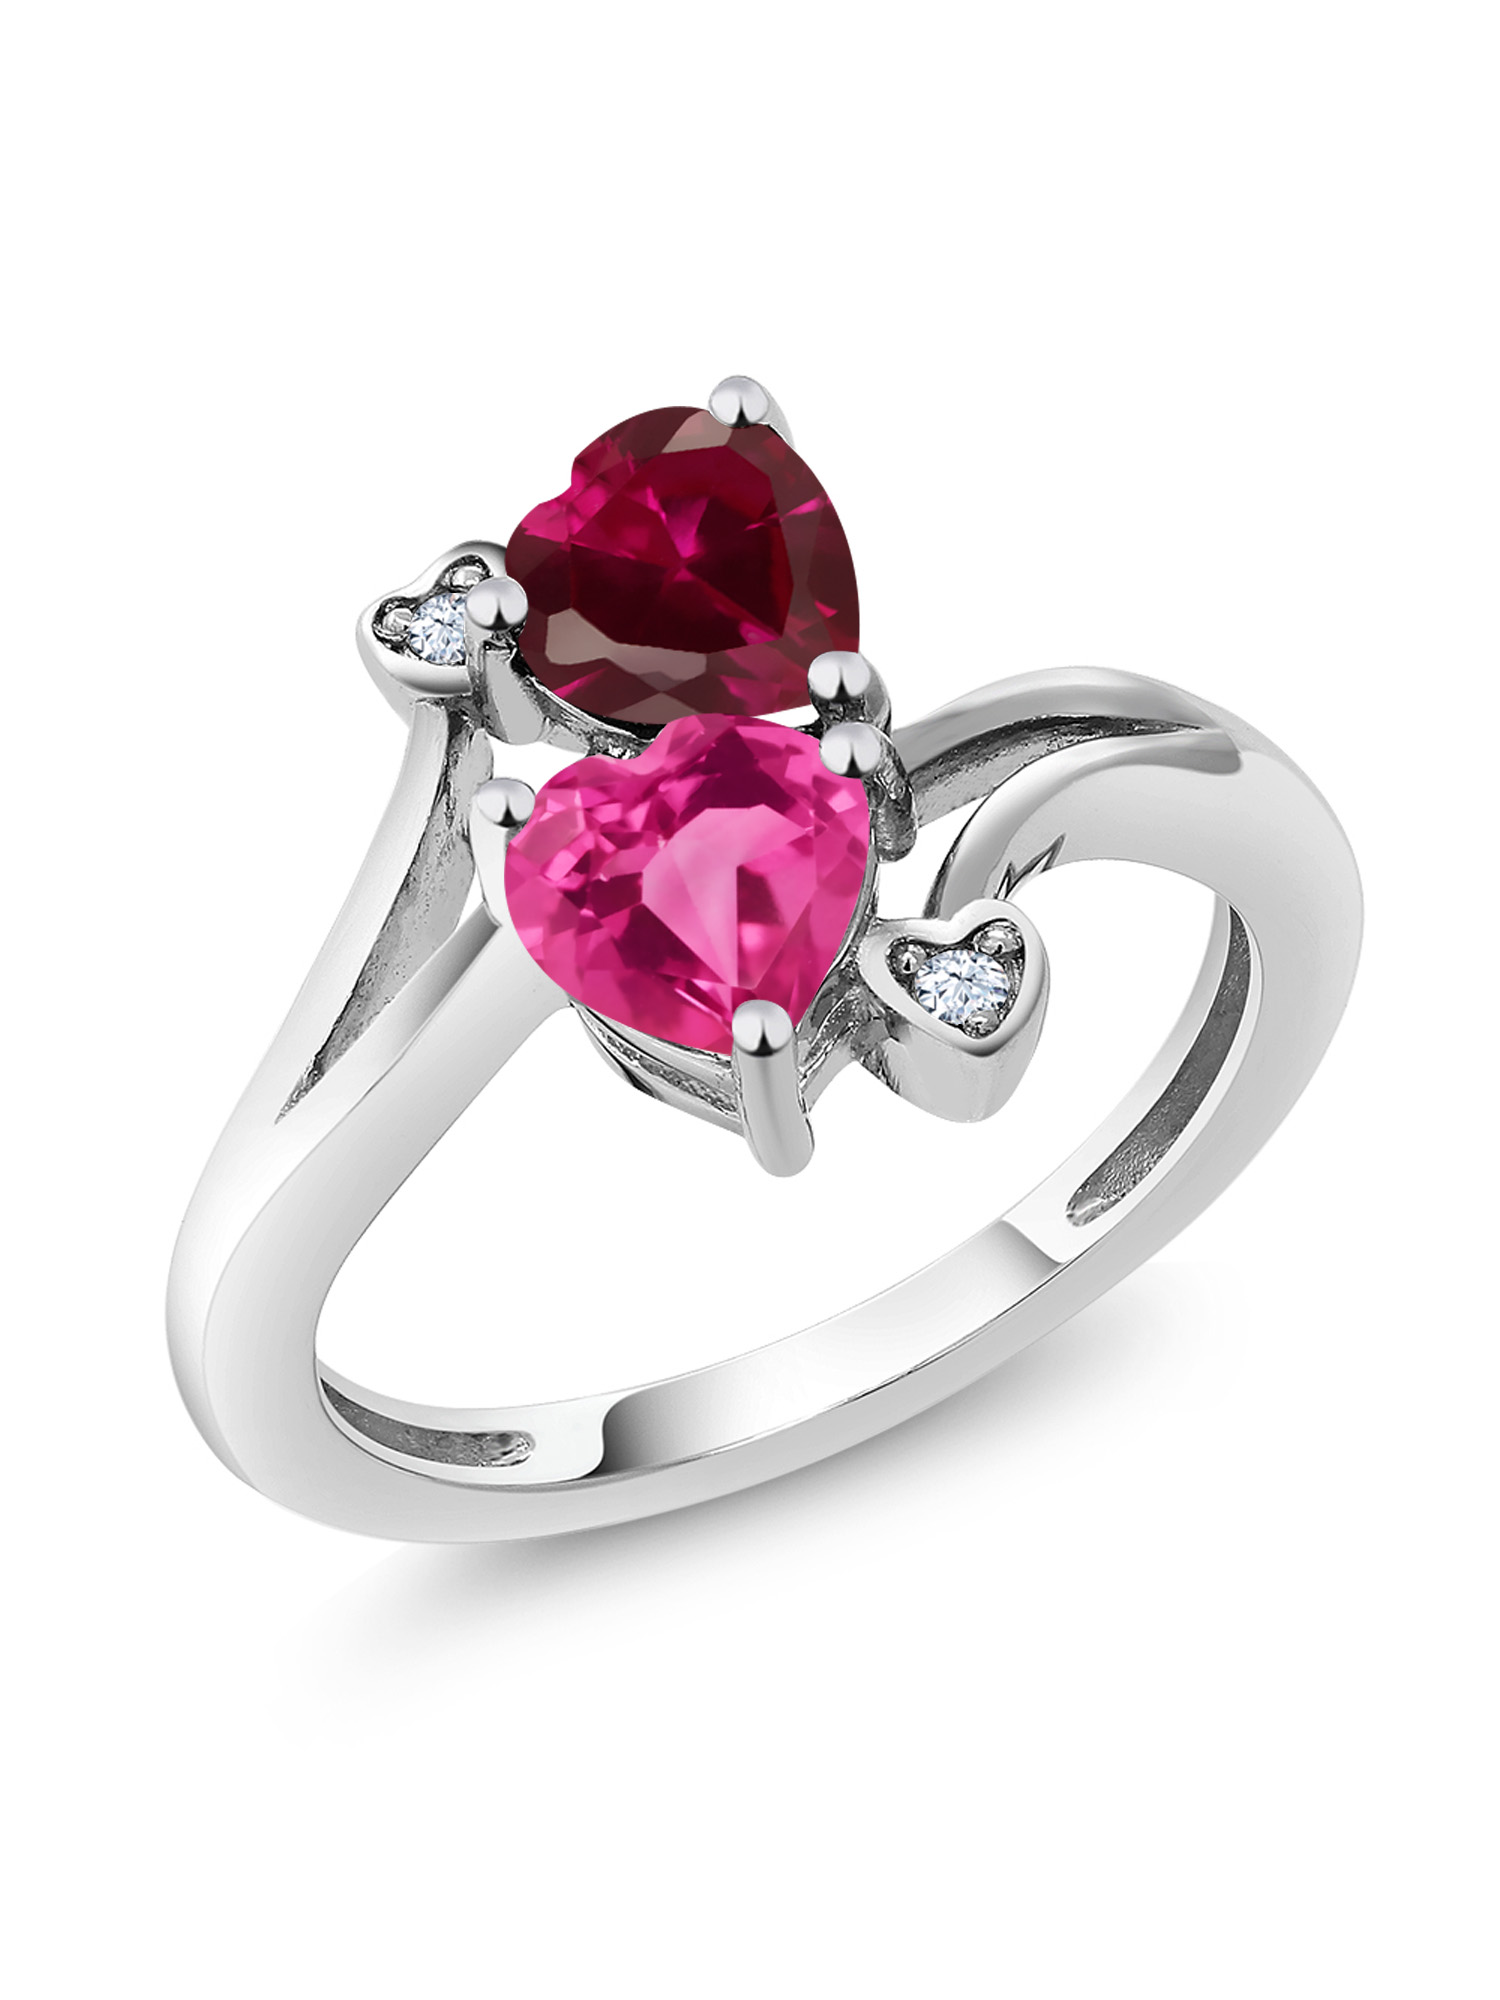 1.79 Ct Heart Shape Pink Created Sapphire Red Created Ruby 10K White Gold Ring by